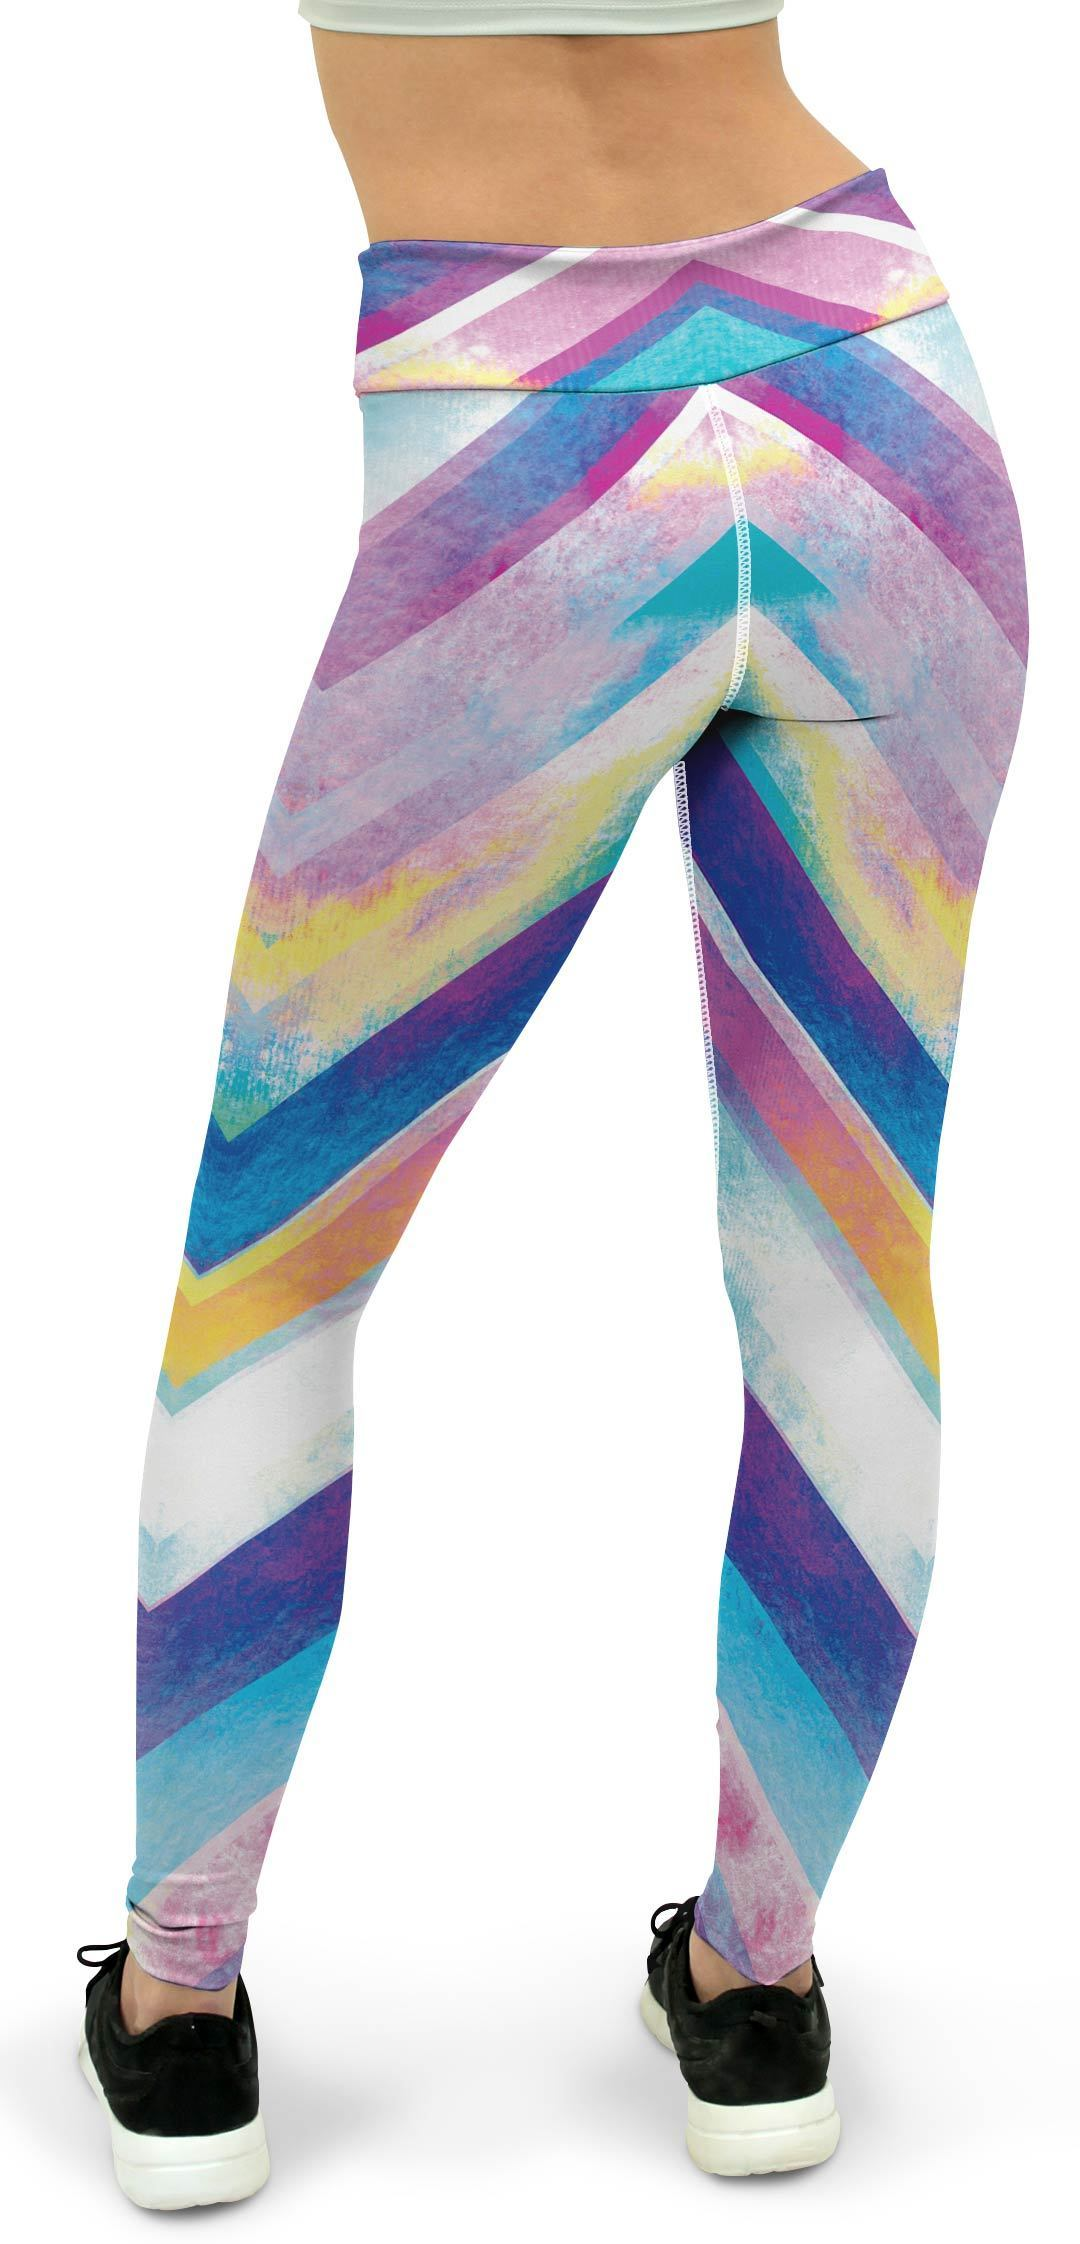 Zigzag Striped Yoga Pants